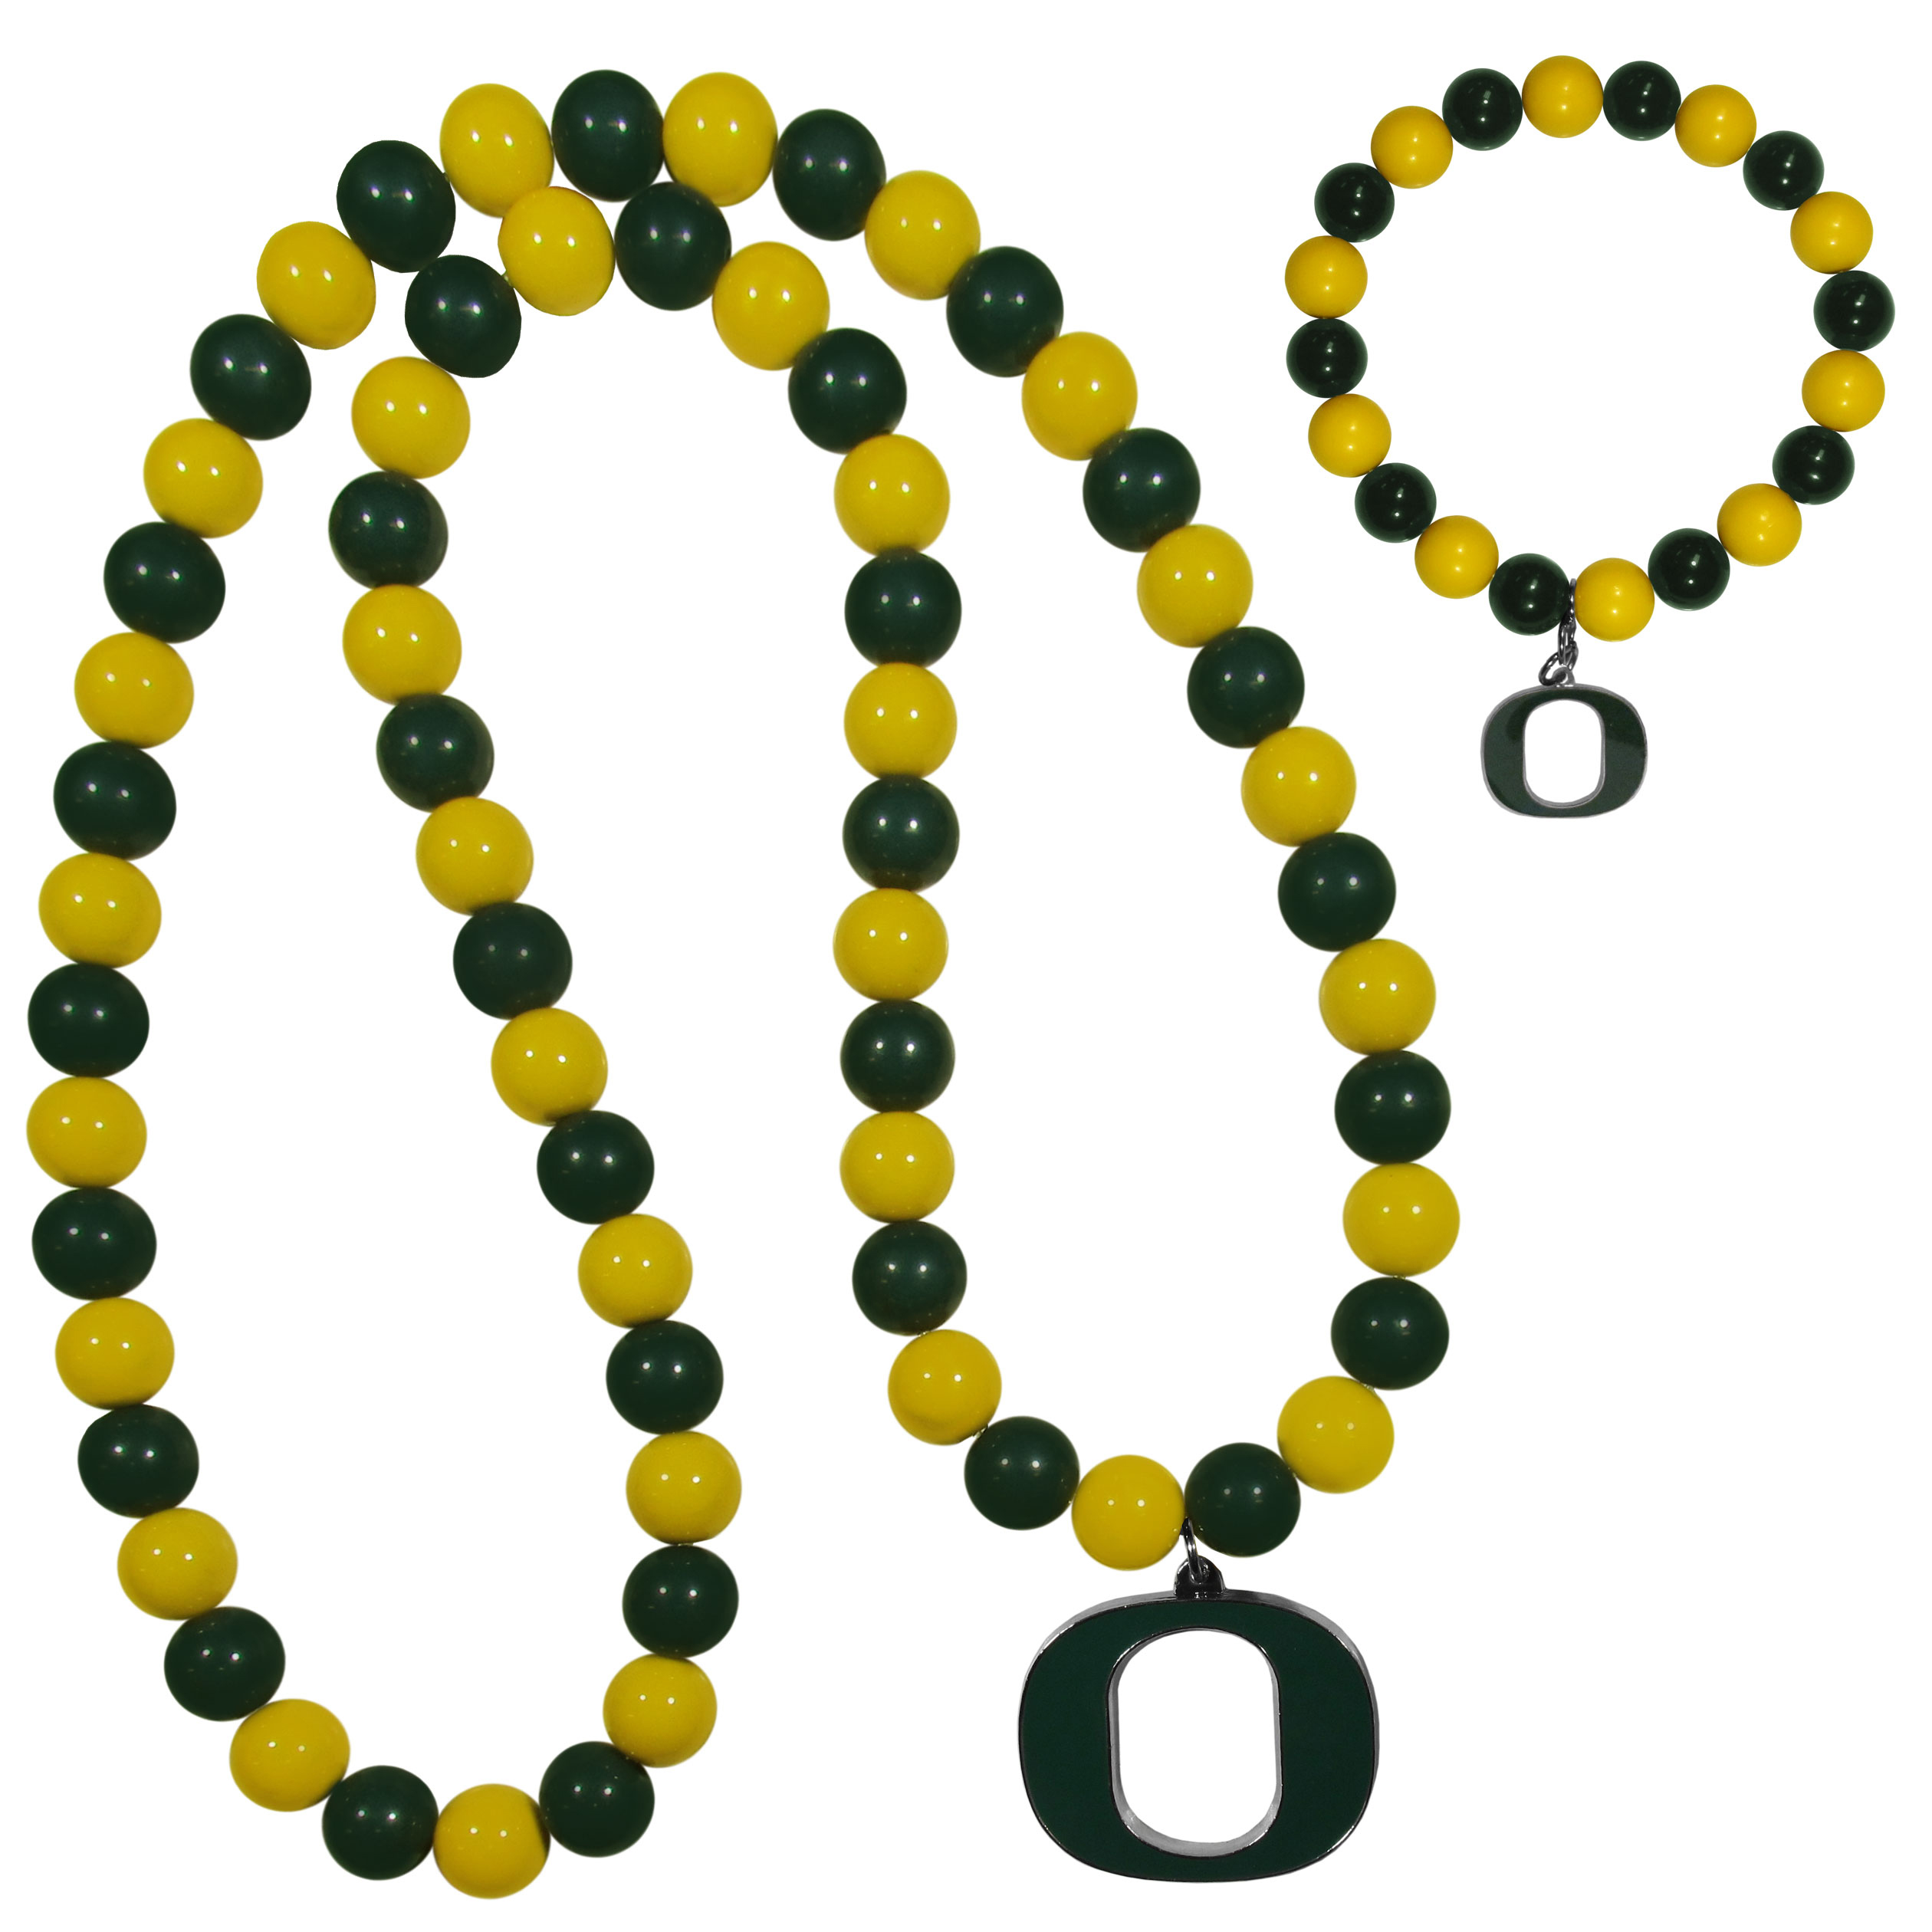 Oregon Ducks Fan Bead Necklace and Bracelet Set - These fun and colorful Oregon Ducks fan bead jewelry pieces are an eyecatching way to show off your team spirit. The striking necklace is a 24 inch string of alternating team colored beads with a large team pendant. The mathcing bracelet has alternating team colored beads on a stretch cord and features a matching team charm.